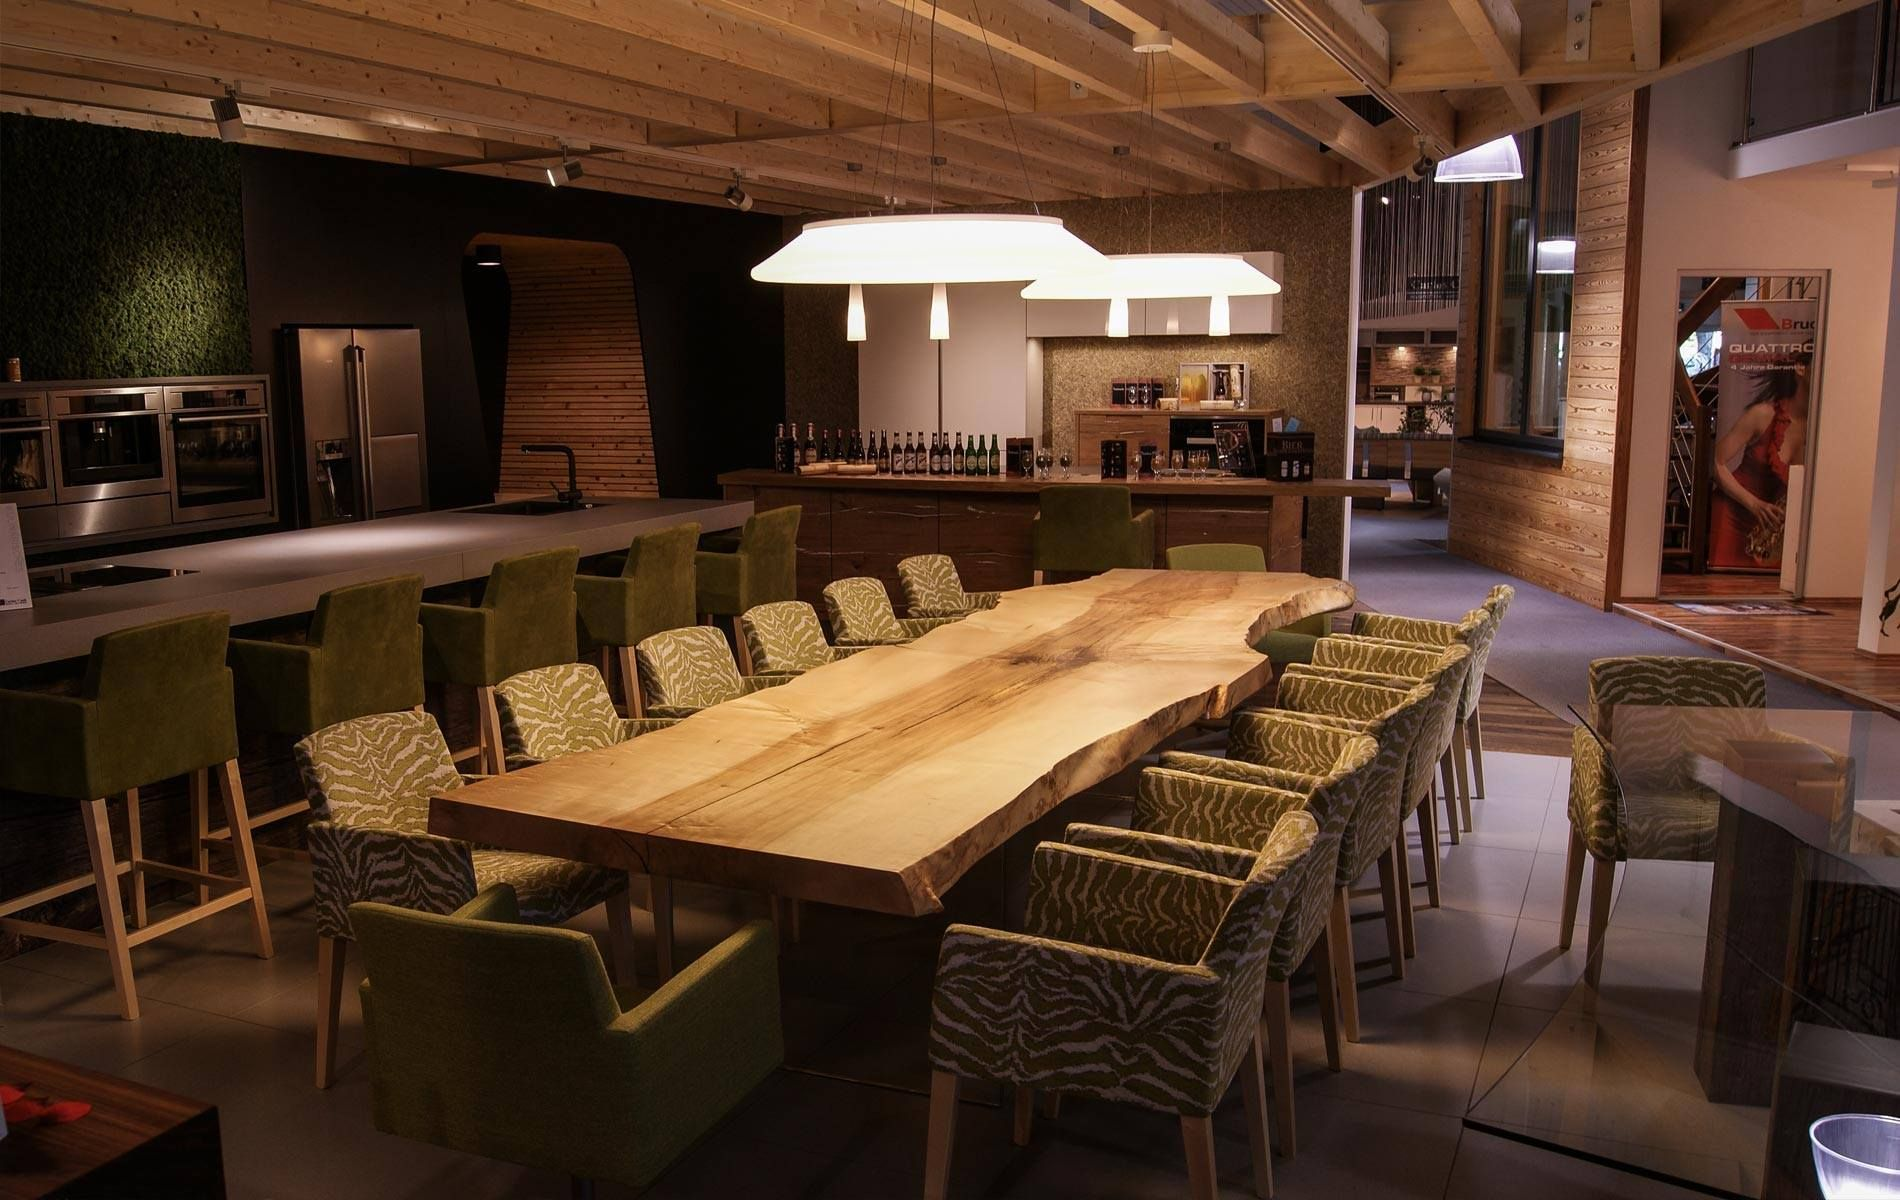 Dining Or Office Table For 14 People Here On A Interior Design Exhibition Massive Table Wooden Live Edge Dining Table Design Natural Wood Table Table